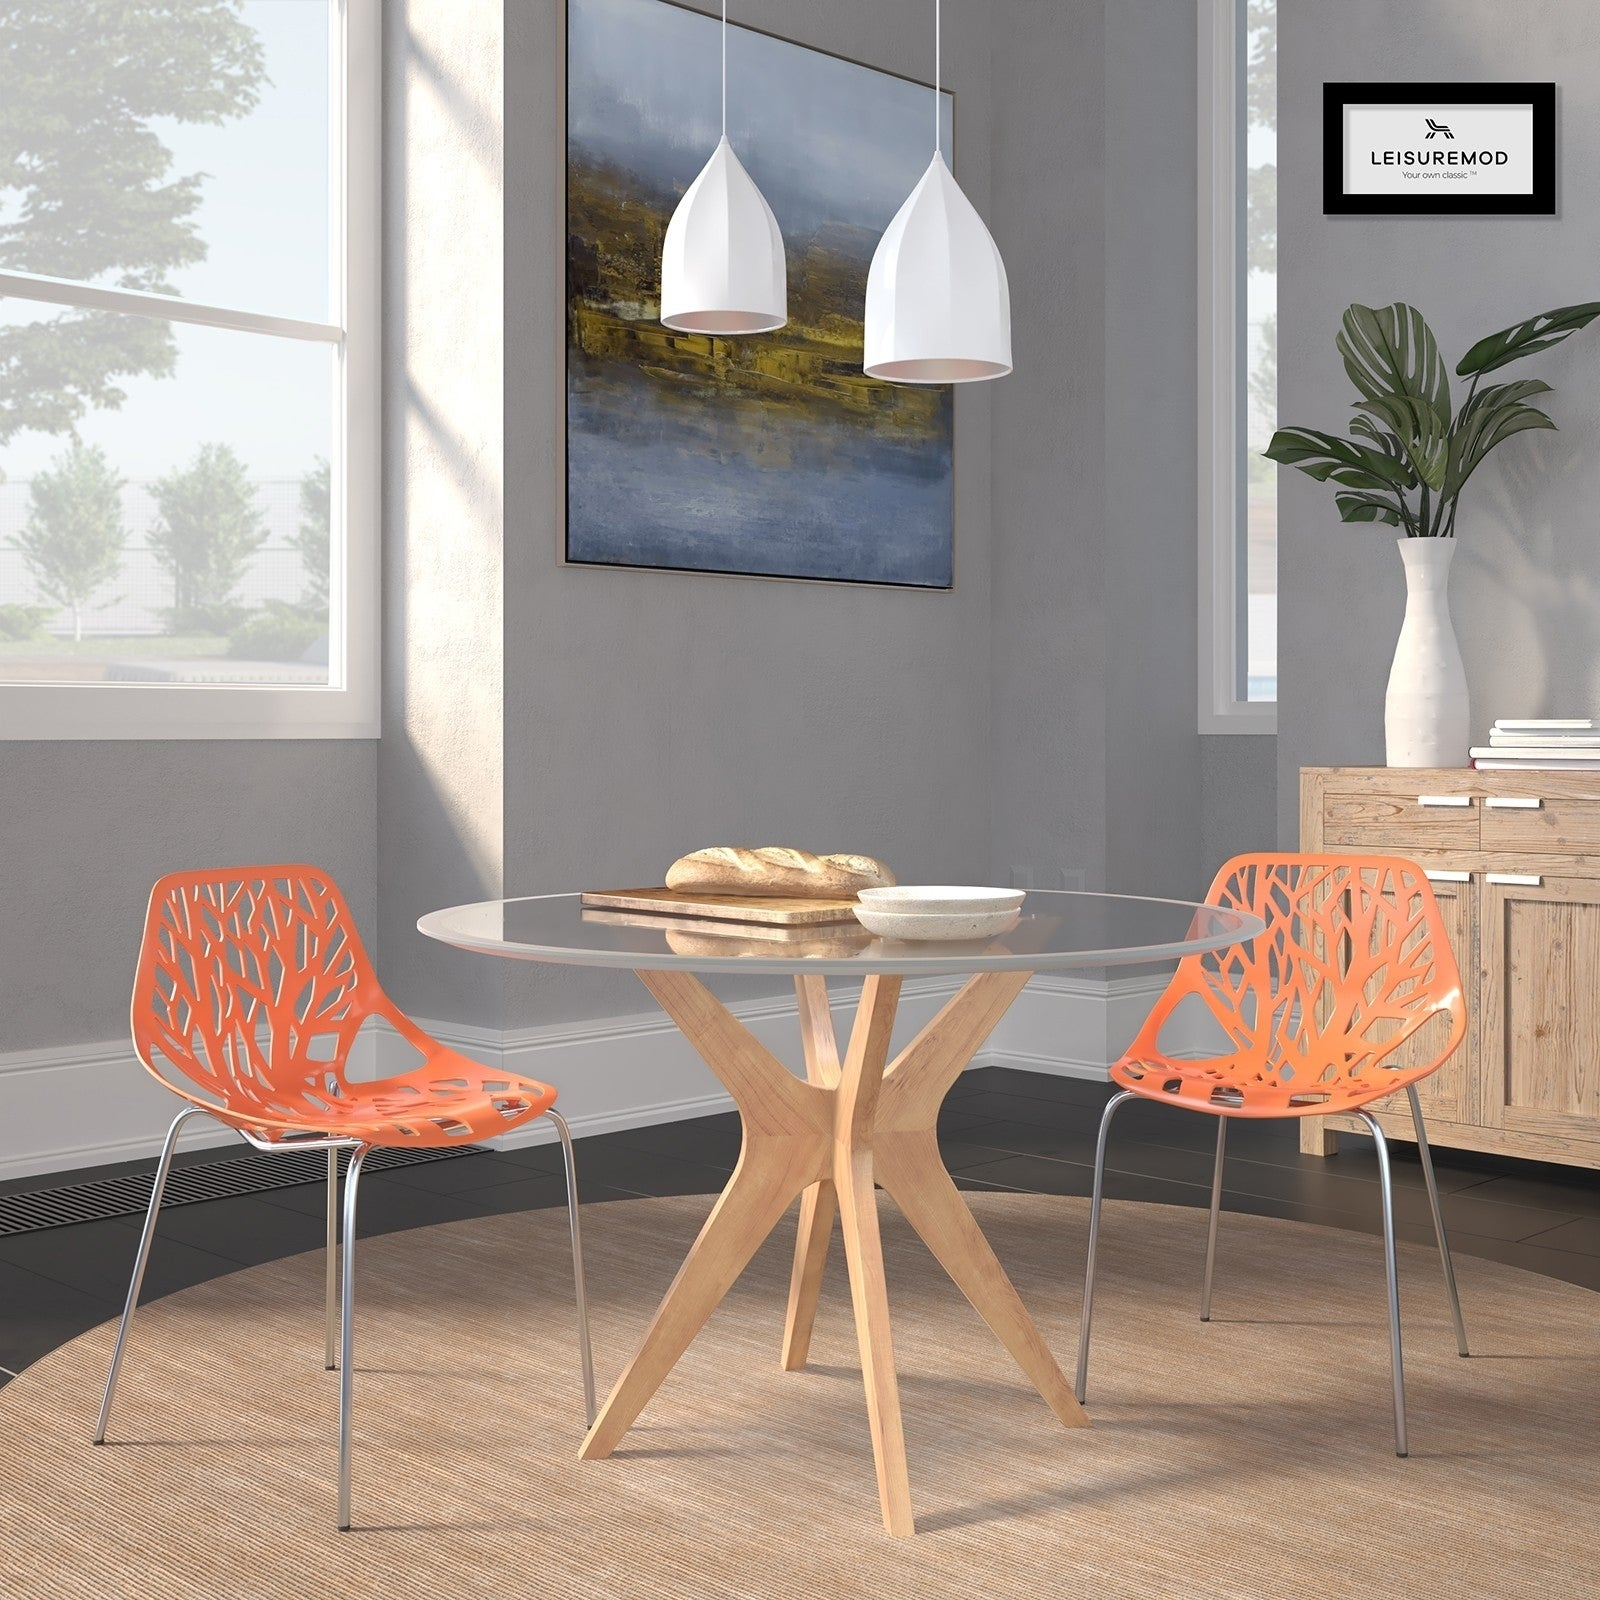 Leisuremod Asbury Orange Open Back Chrome Dining Side Chair Set Of 2 Regarding Asbury Club Chairs (View 14 of 15)